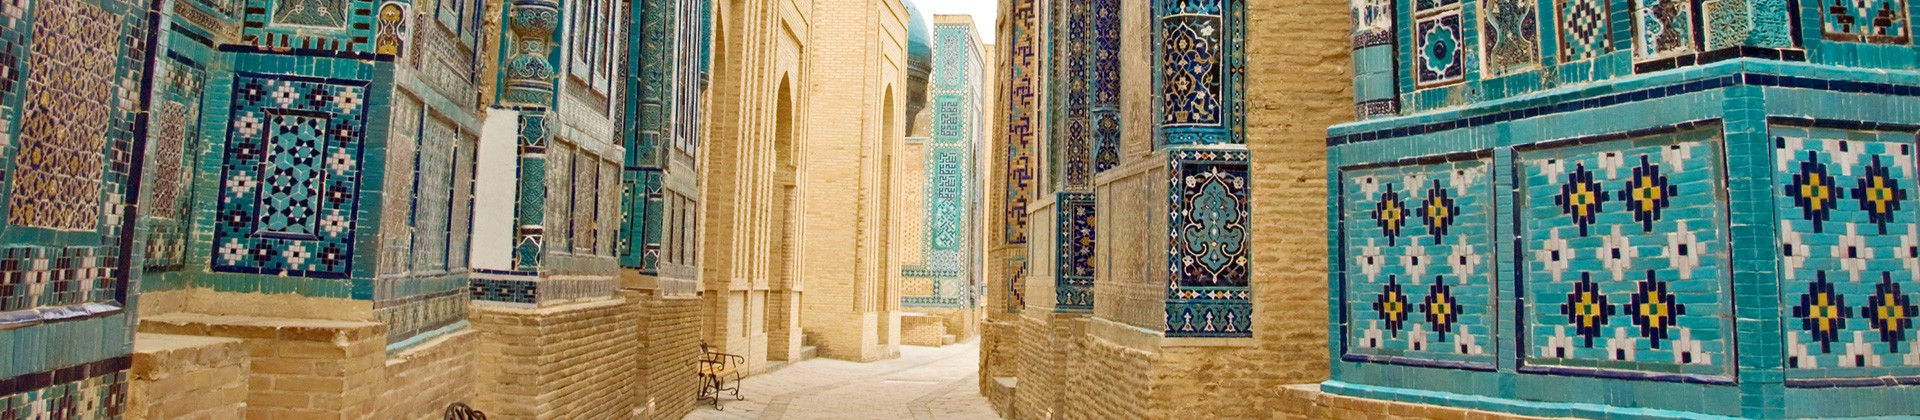 Muslim Holy Places in Uzbekistan (Ziyarat) - 1